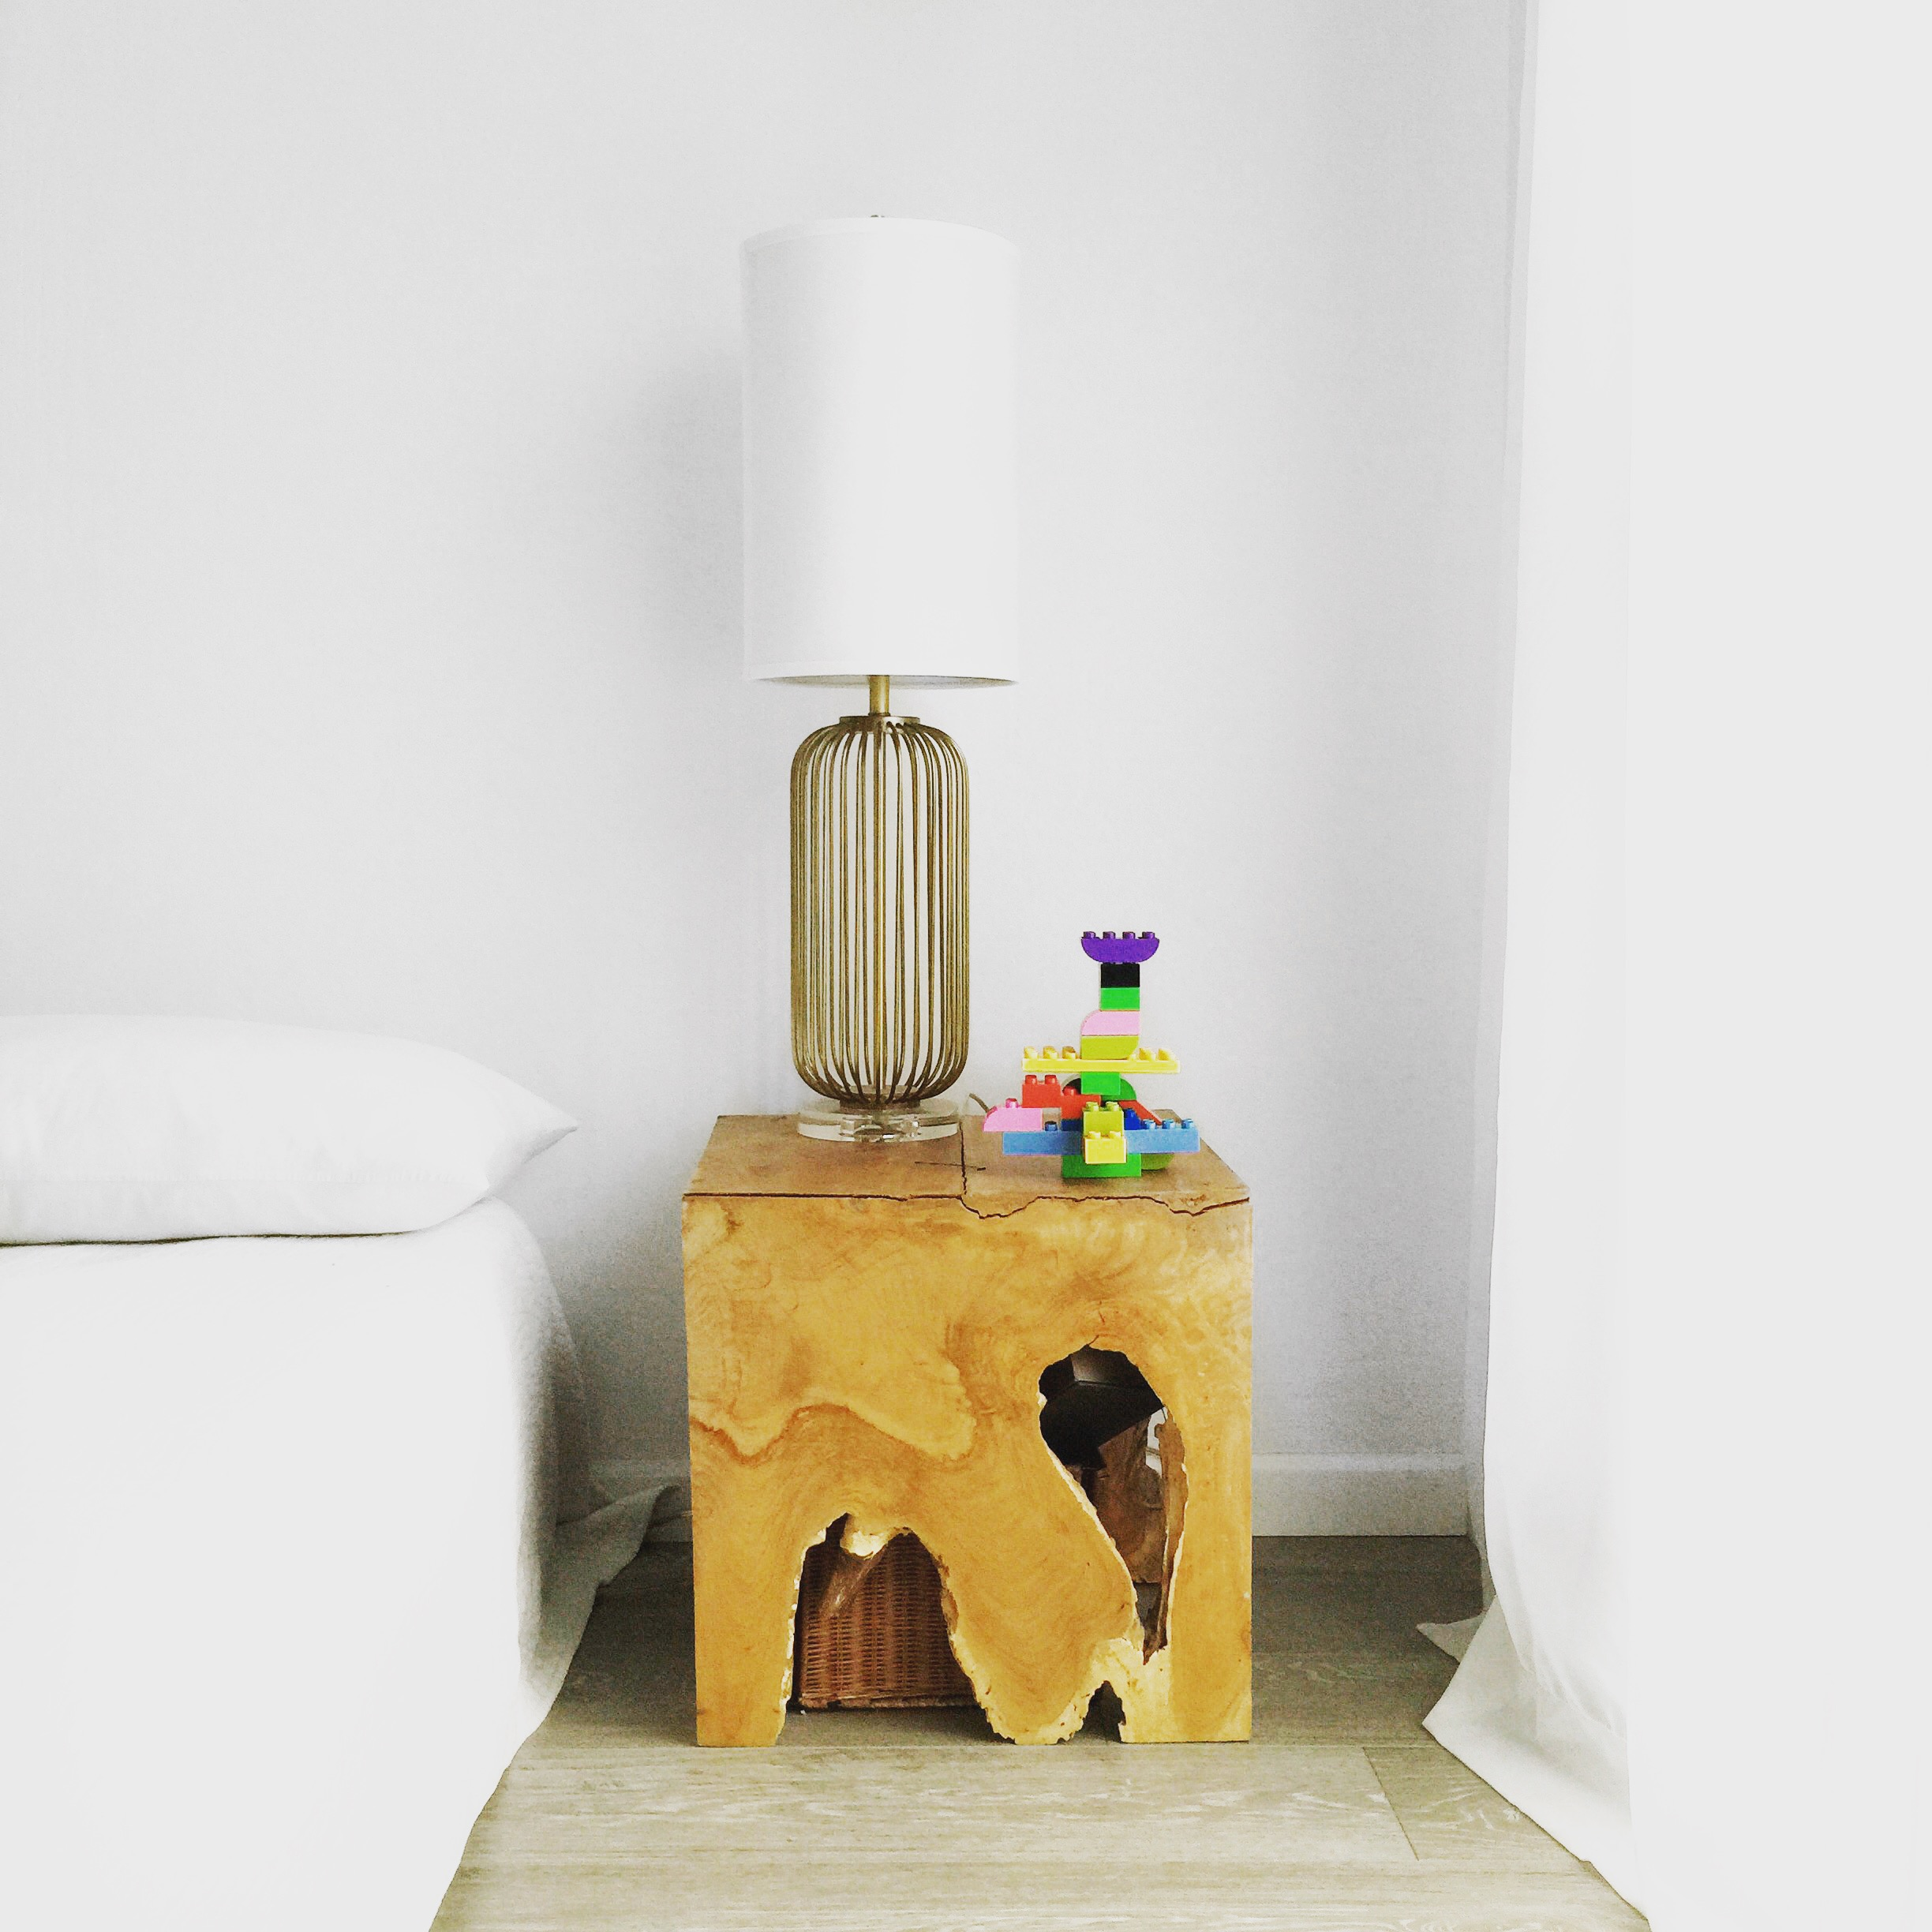 Reclaimed natural teak wood end tables with midcentury modern lamp